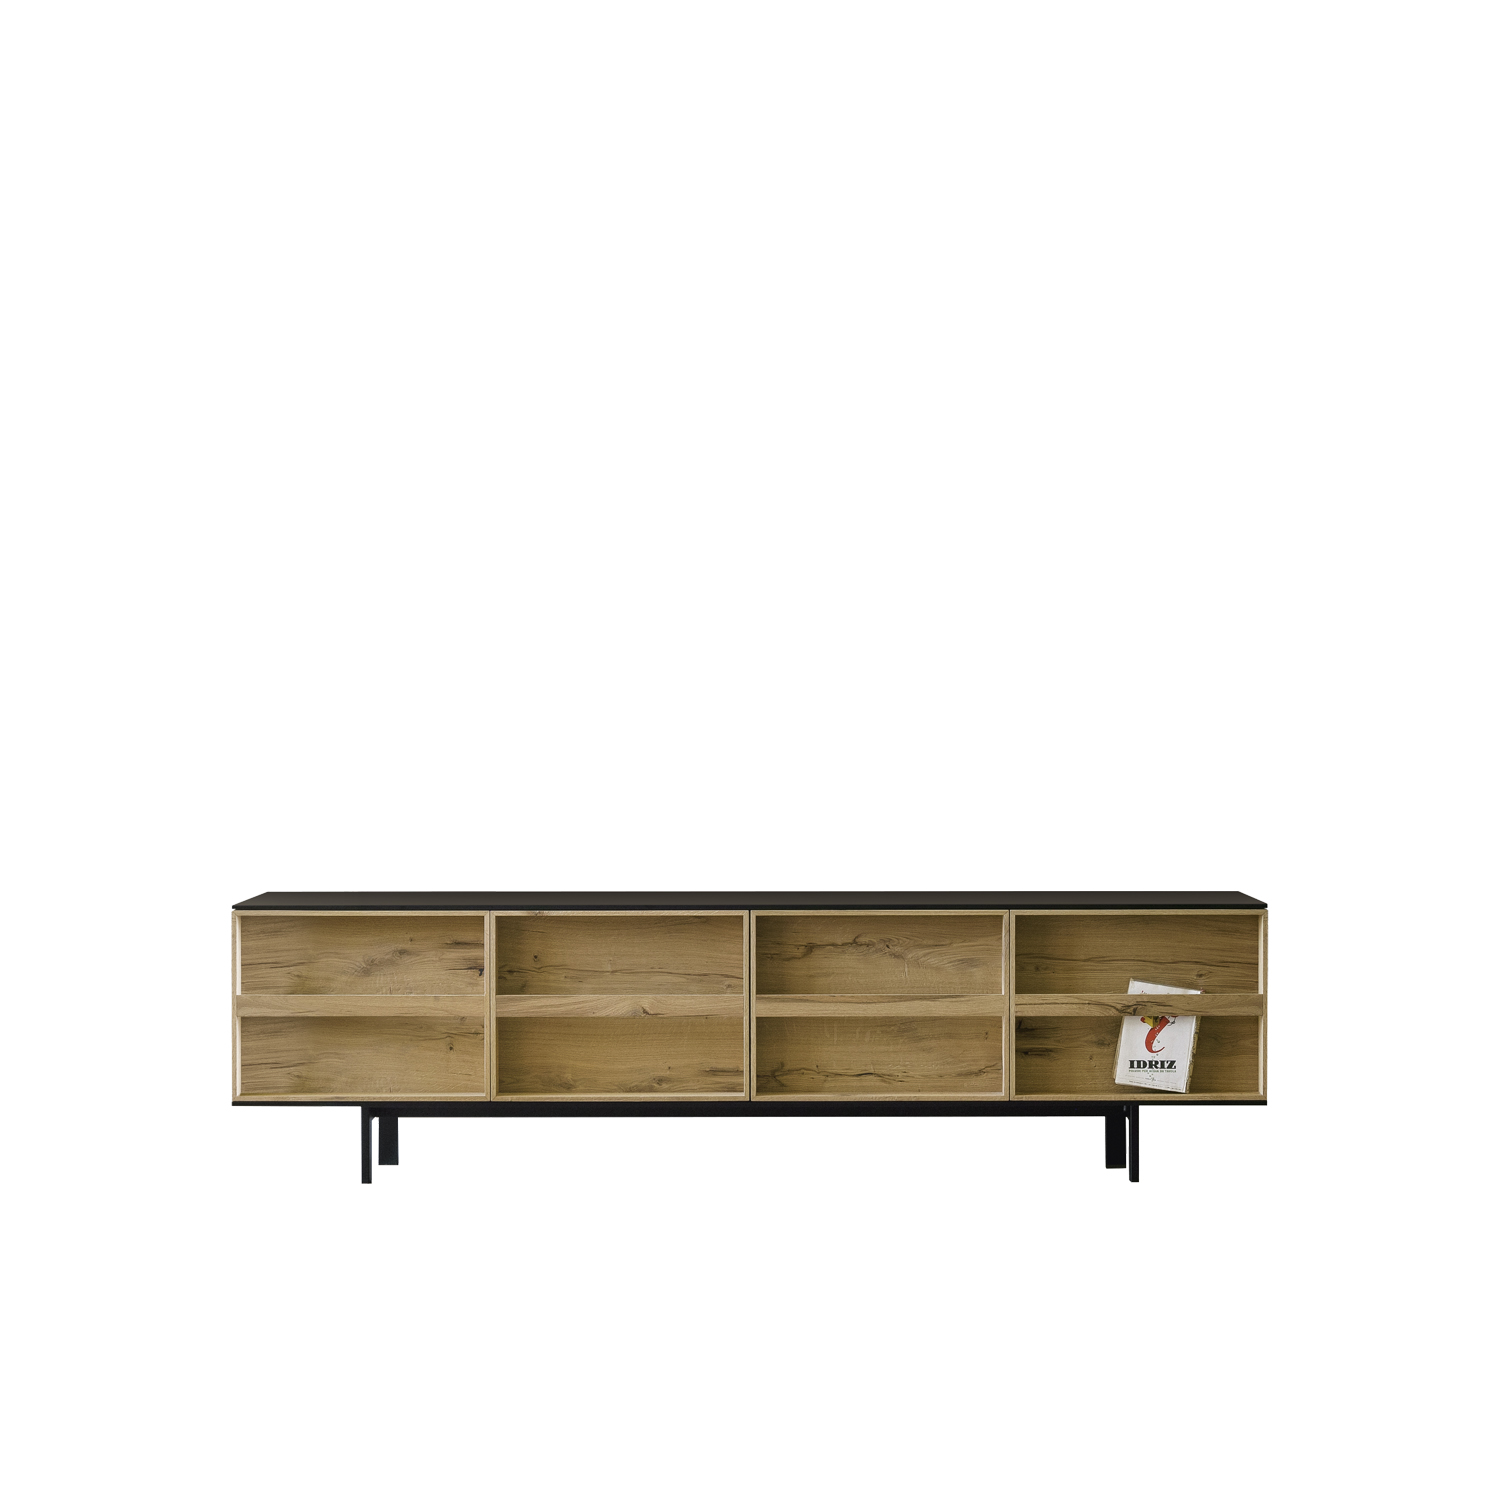 Ramblas Large Sideboard - Evocative, with thin wooden lines and a minimalist charm. The sideboard is characterized by doors designed as a library and equipped with an effective book-like opening system. It is available in three different sizes.